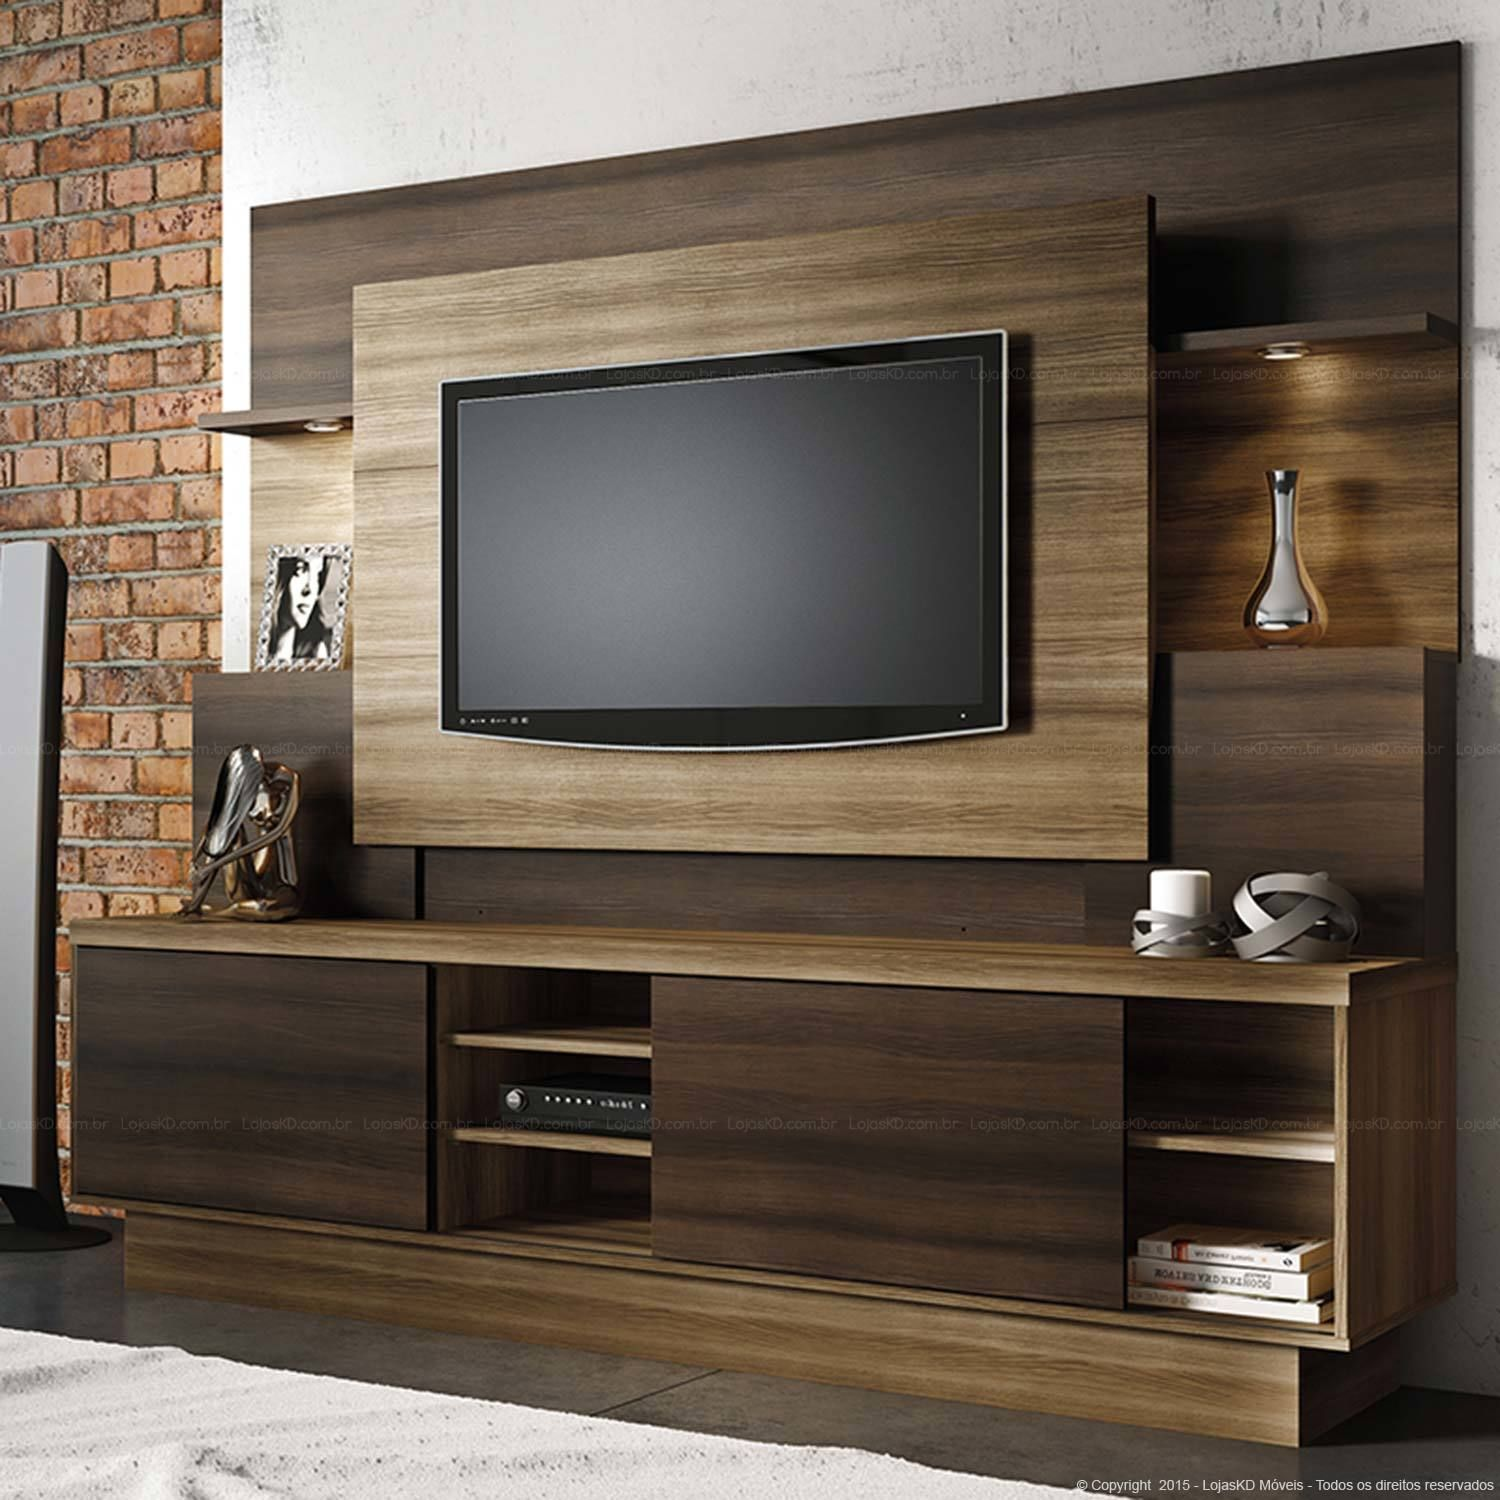 Home Entertainment Spaces: Estante Home Theater Para TV Até 55 Polegadas Aron